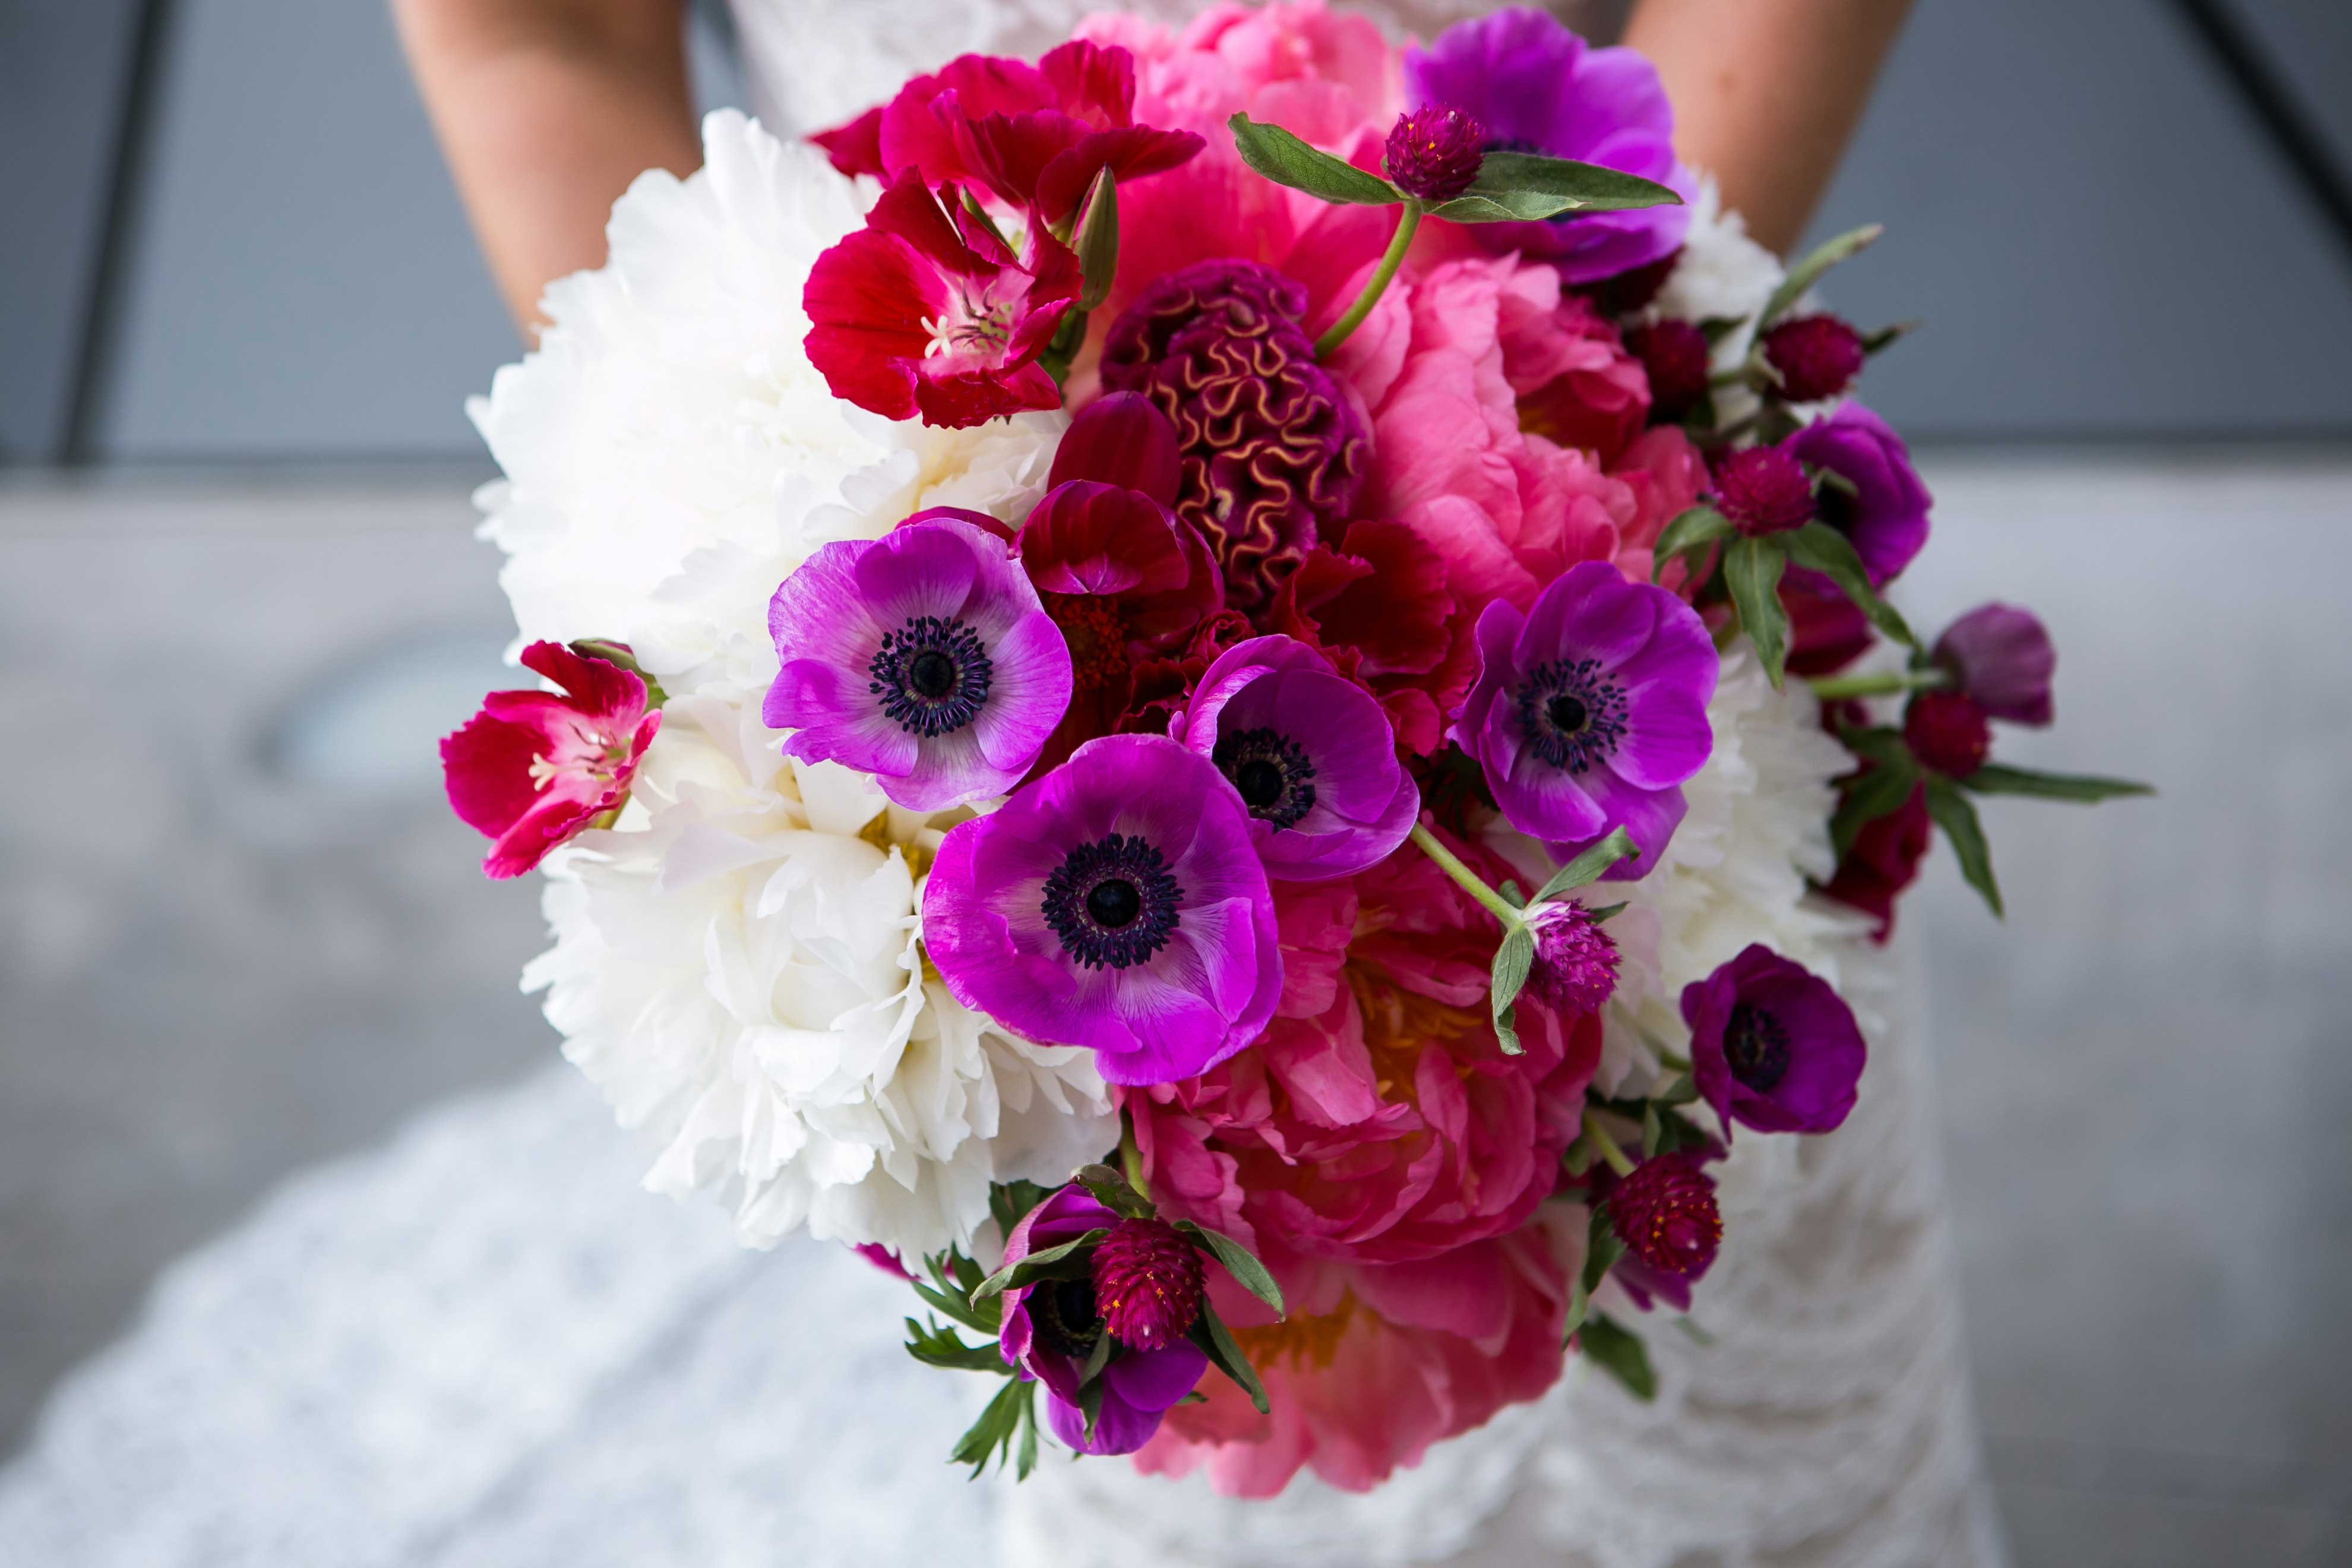 White flower pink peony fuchsia cockscomb purple anemone floral bridal bouquet dark moody color palette